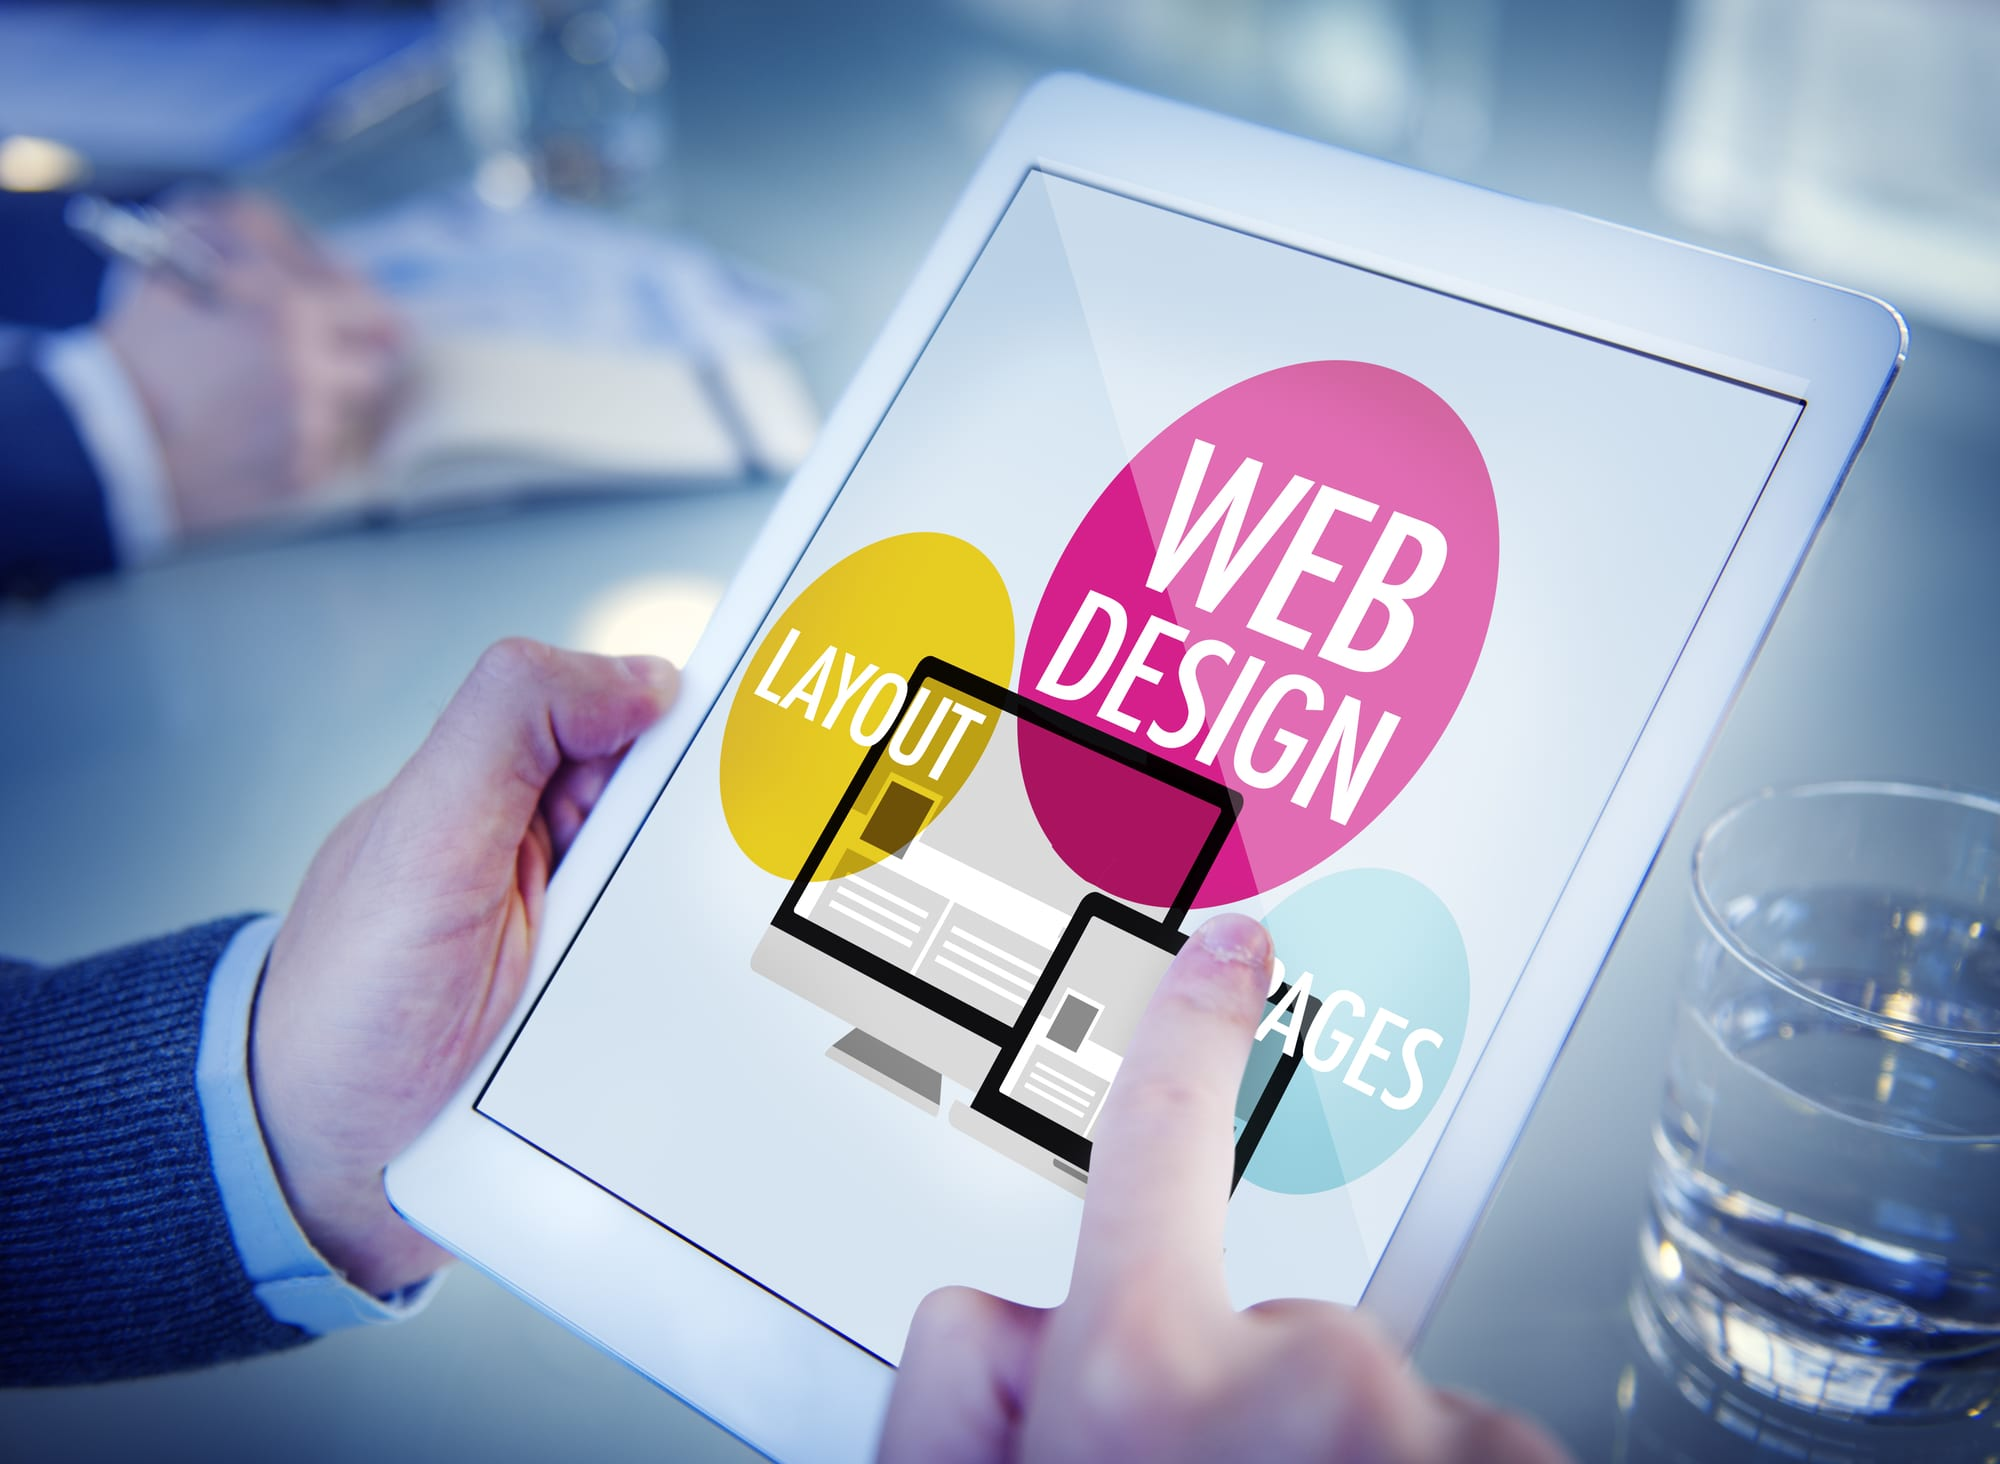 Web Design: Make It Work For You